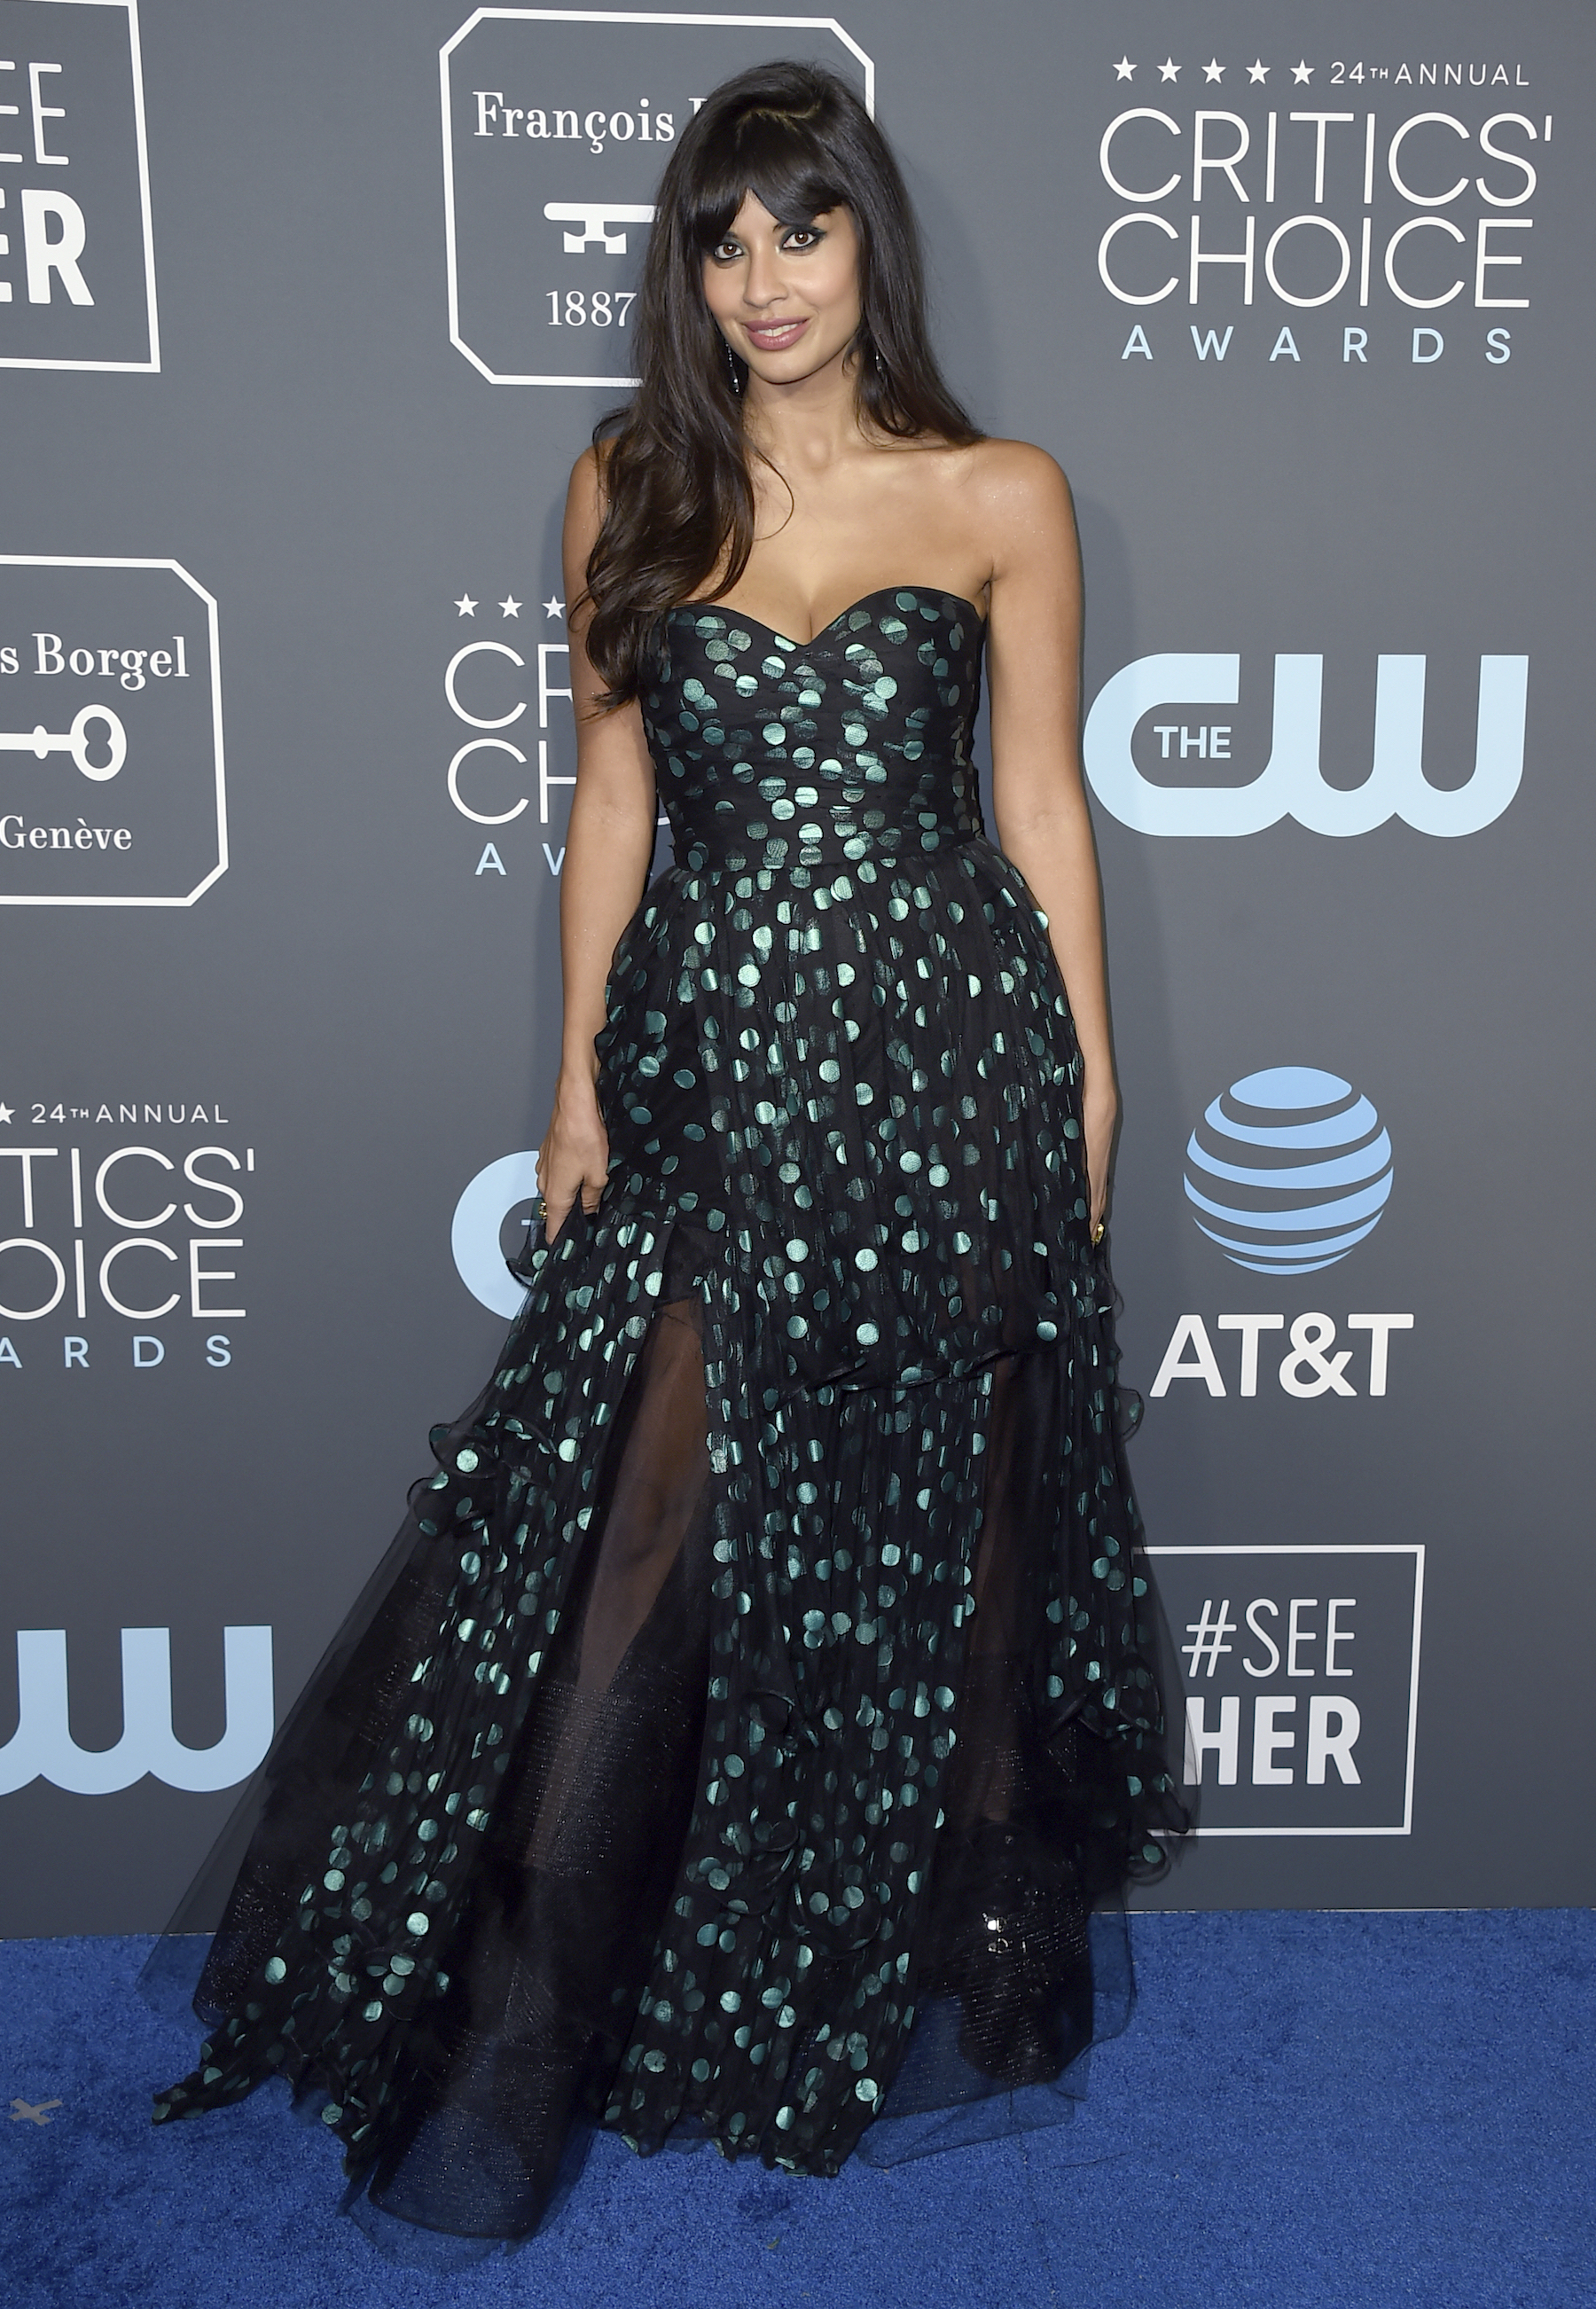 <div class='meta'><div class='origin-logo' data-origin='AP'></div><span class='caption-text' data-credit='Jordan Strauss/Invision/AP'>Jameela Jamil arrives at the 24th annual Critics' Choice Awards on Sunday, Jan. 13, 2019, at the Barker Hangar in Santa Monica, Calif.</span></div>